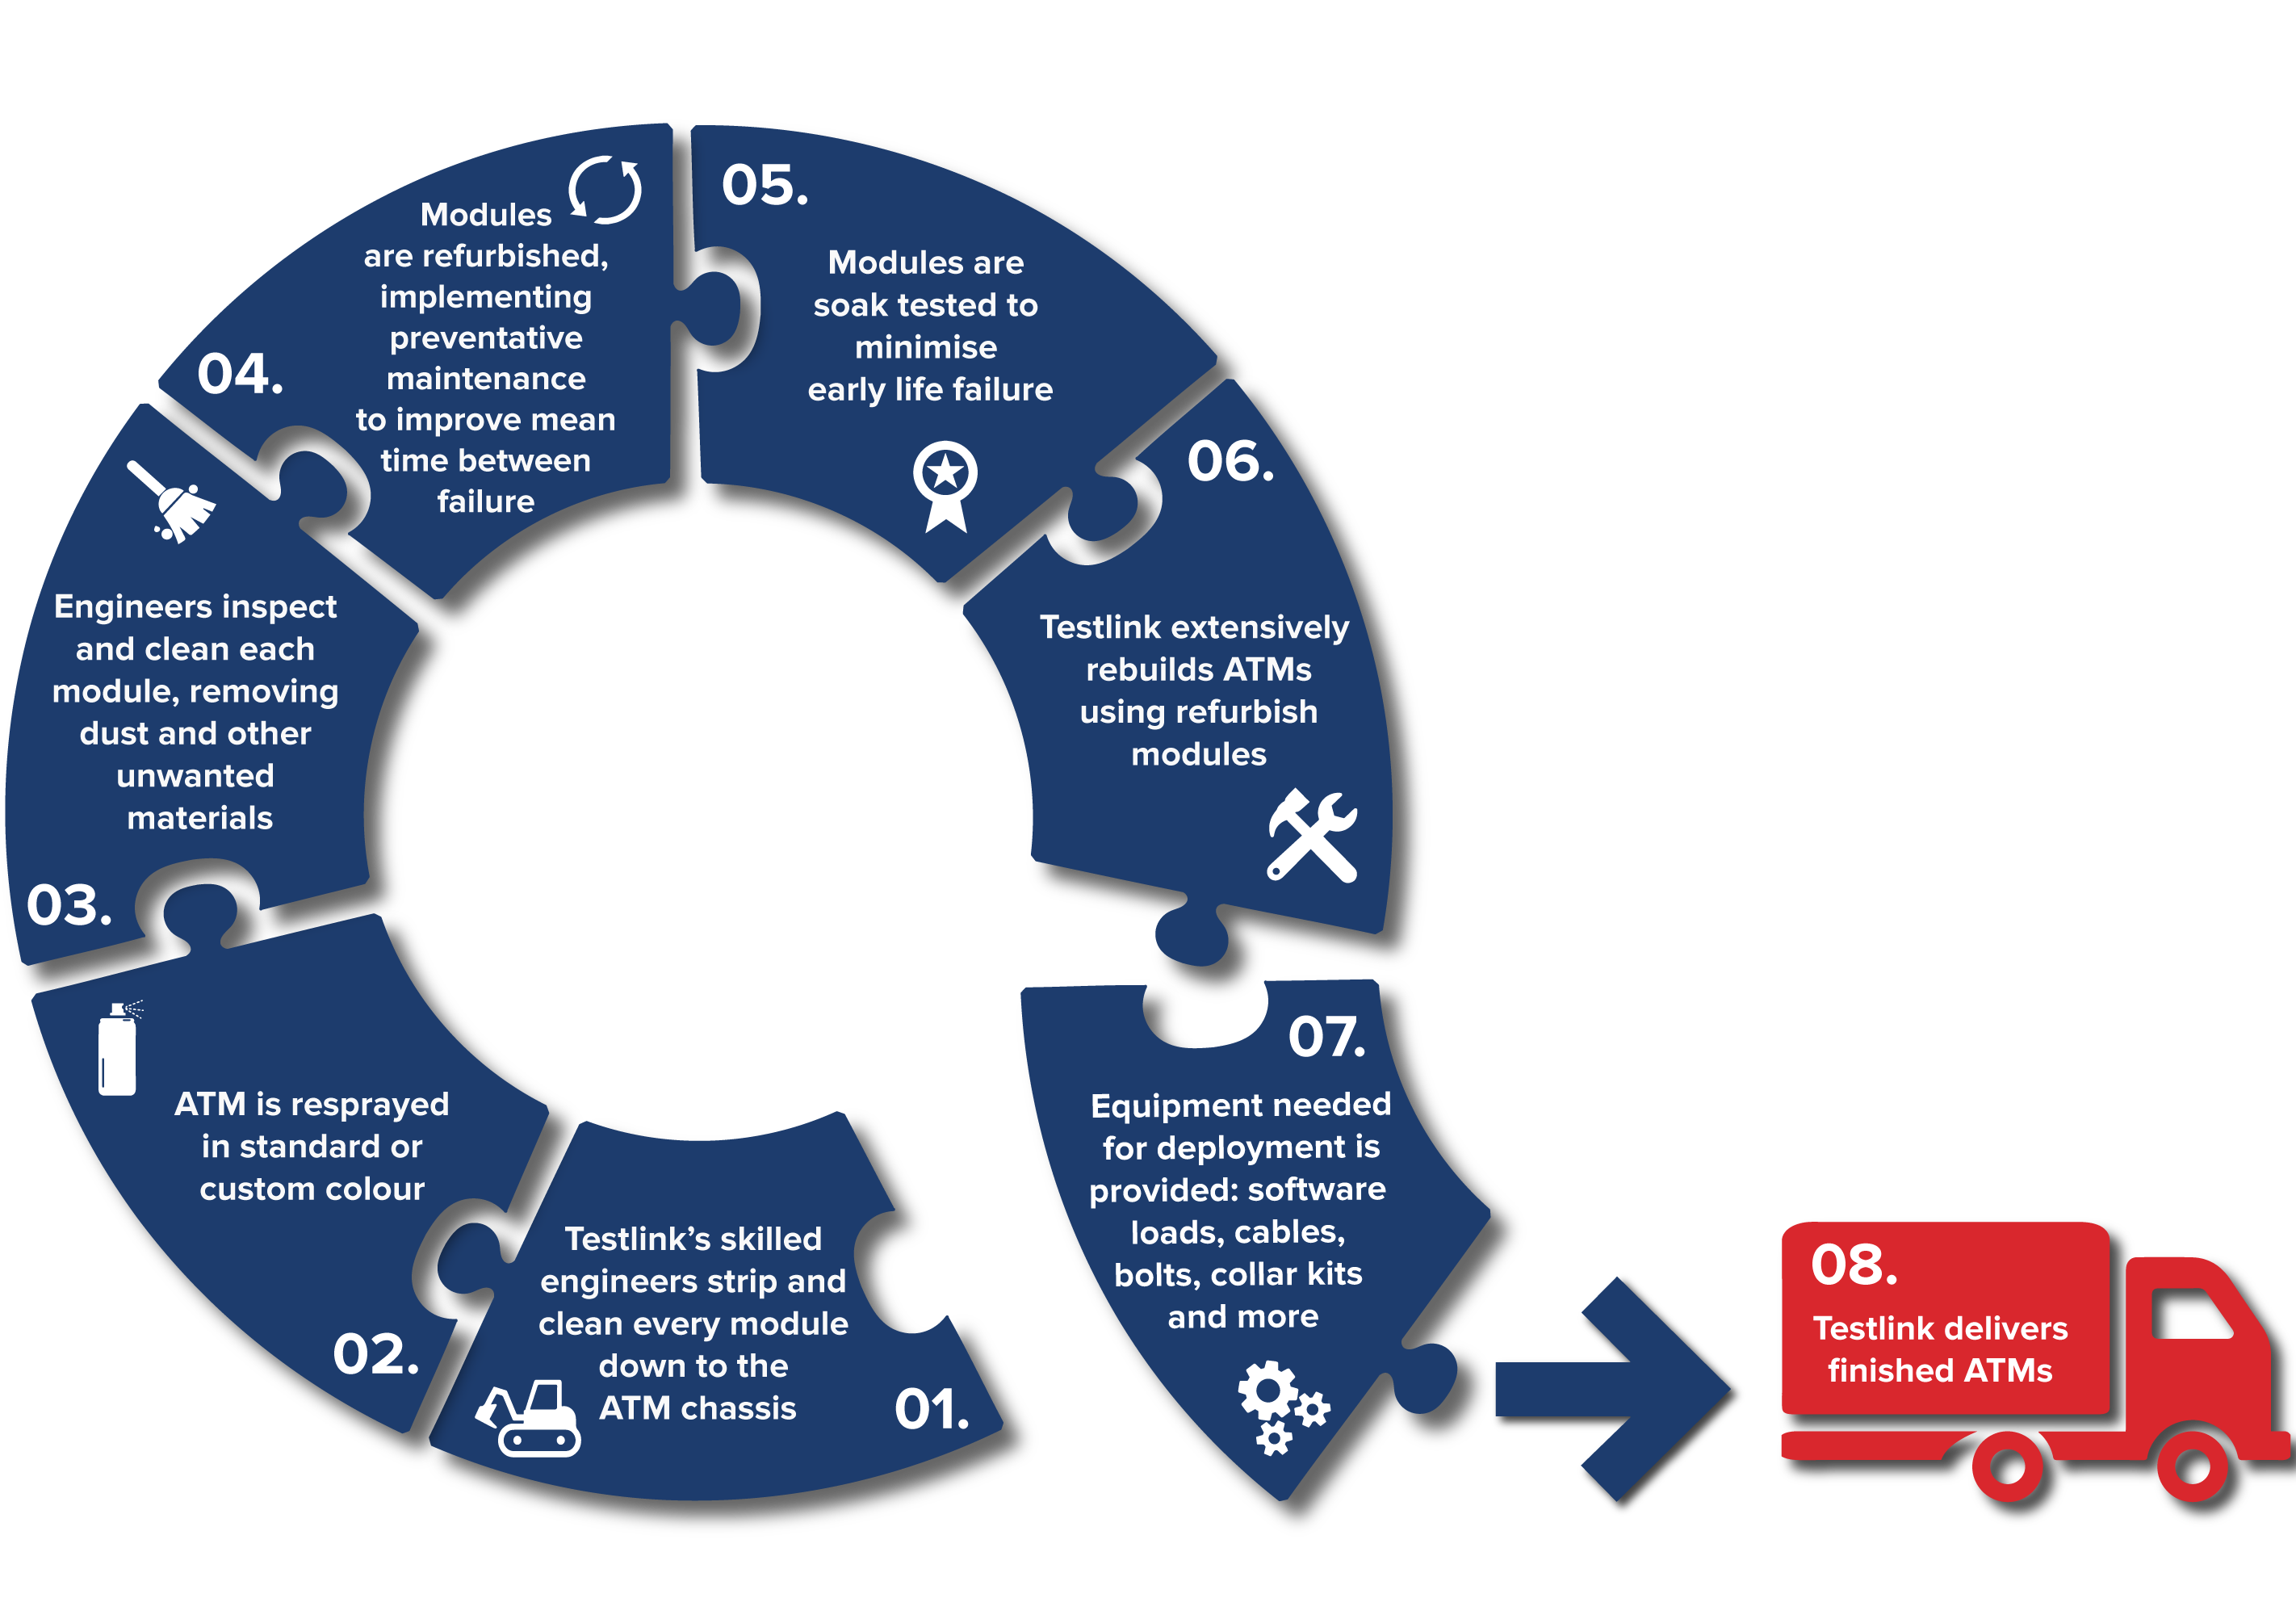 Cycle of Remanufacturing